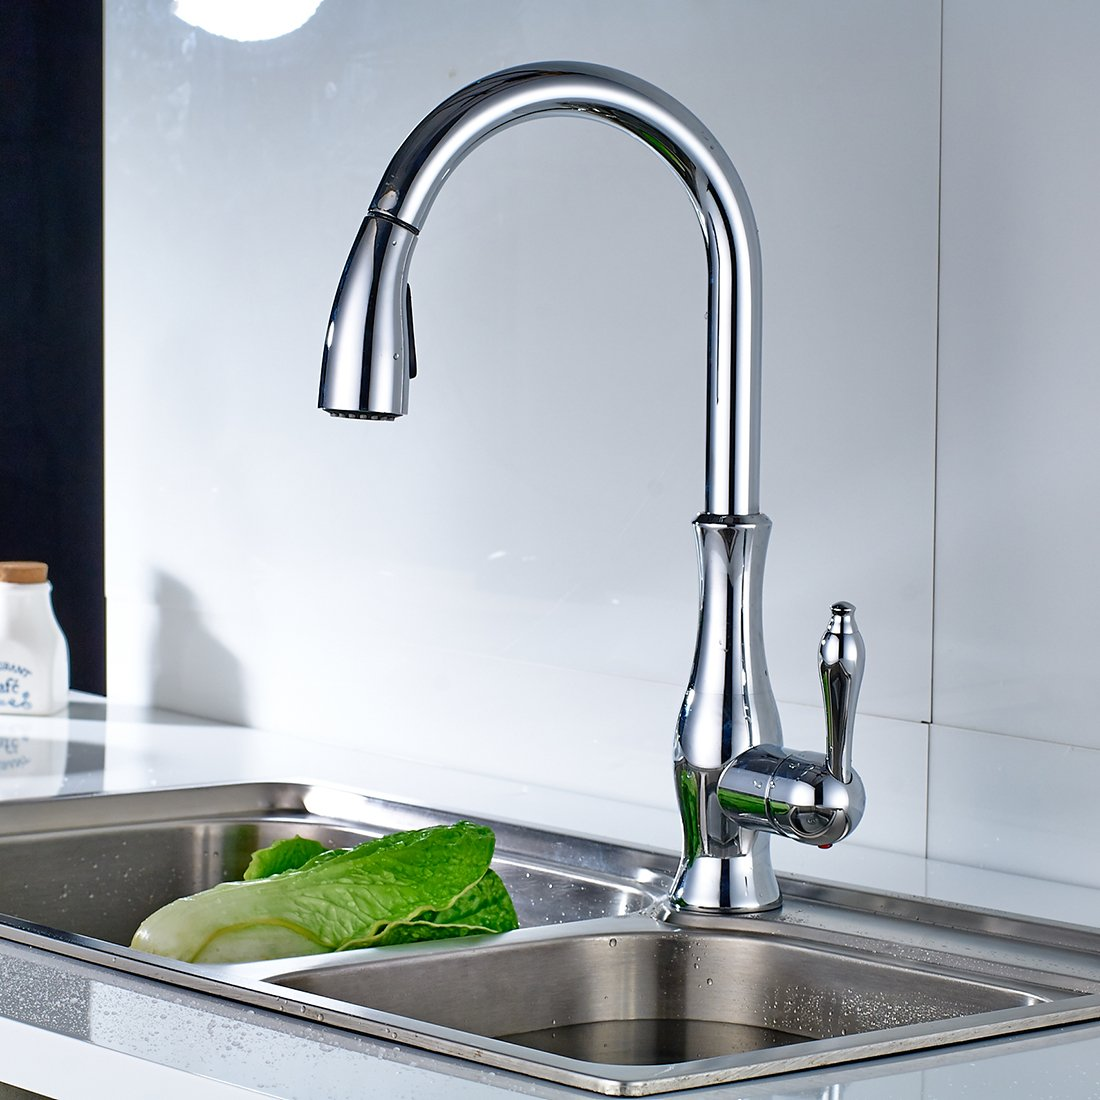 Luxury Simplice Faucet Crest - Faucet Collections - thoughtfire.info